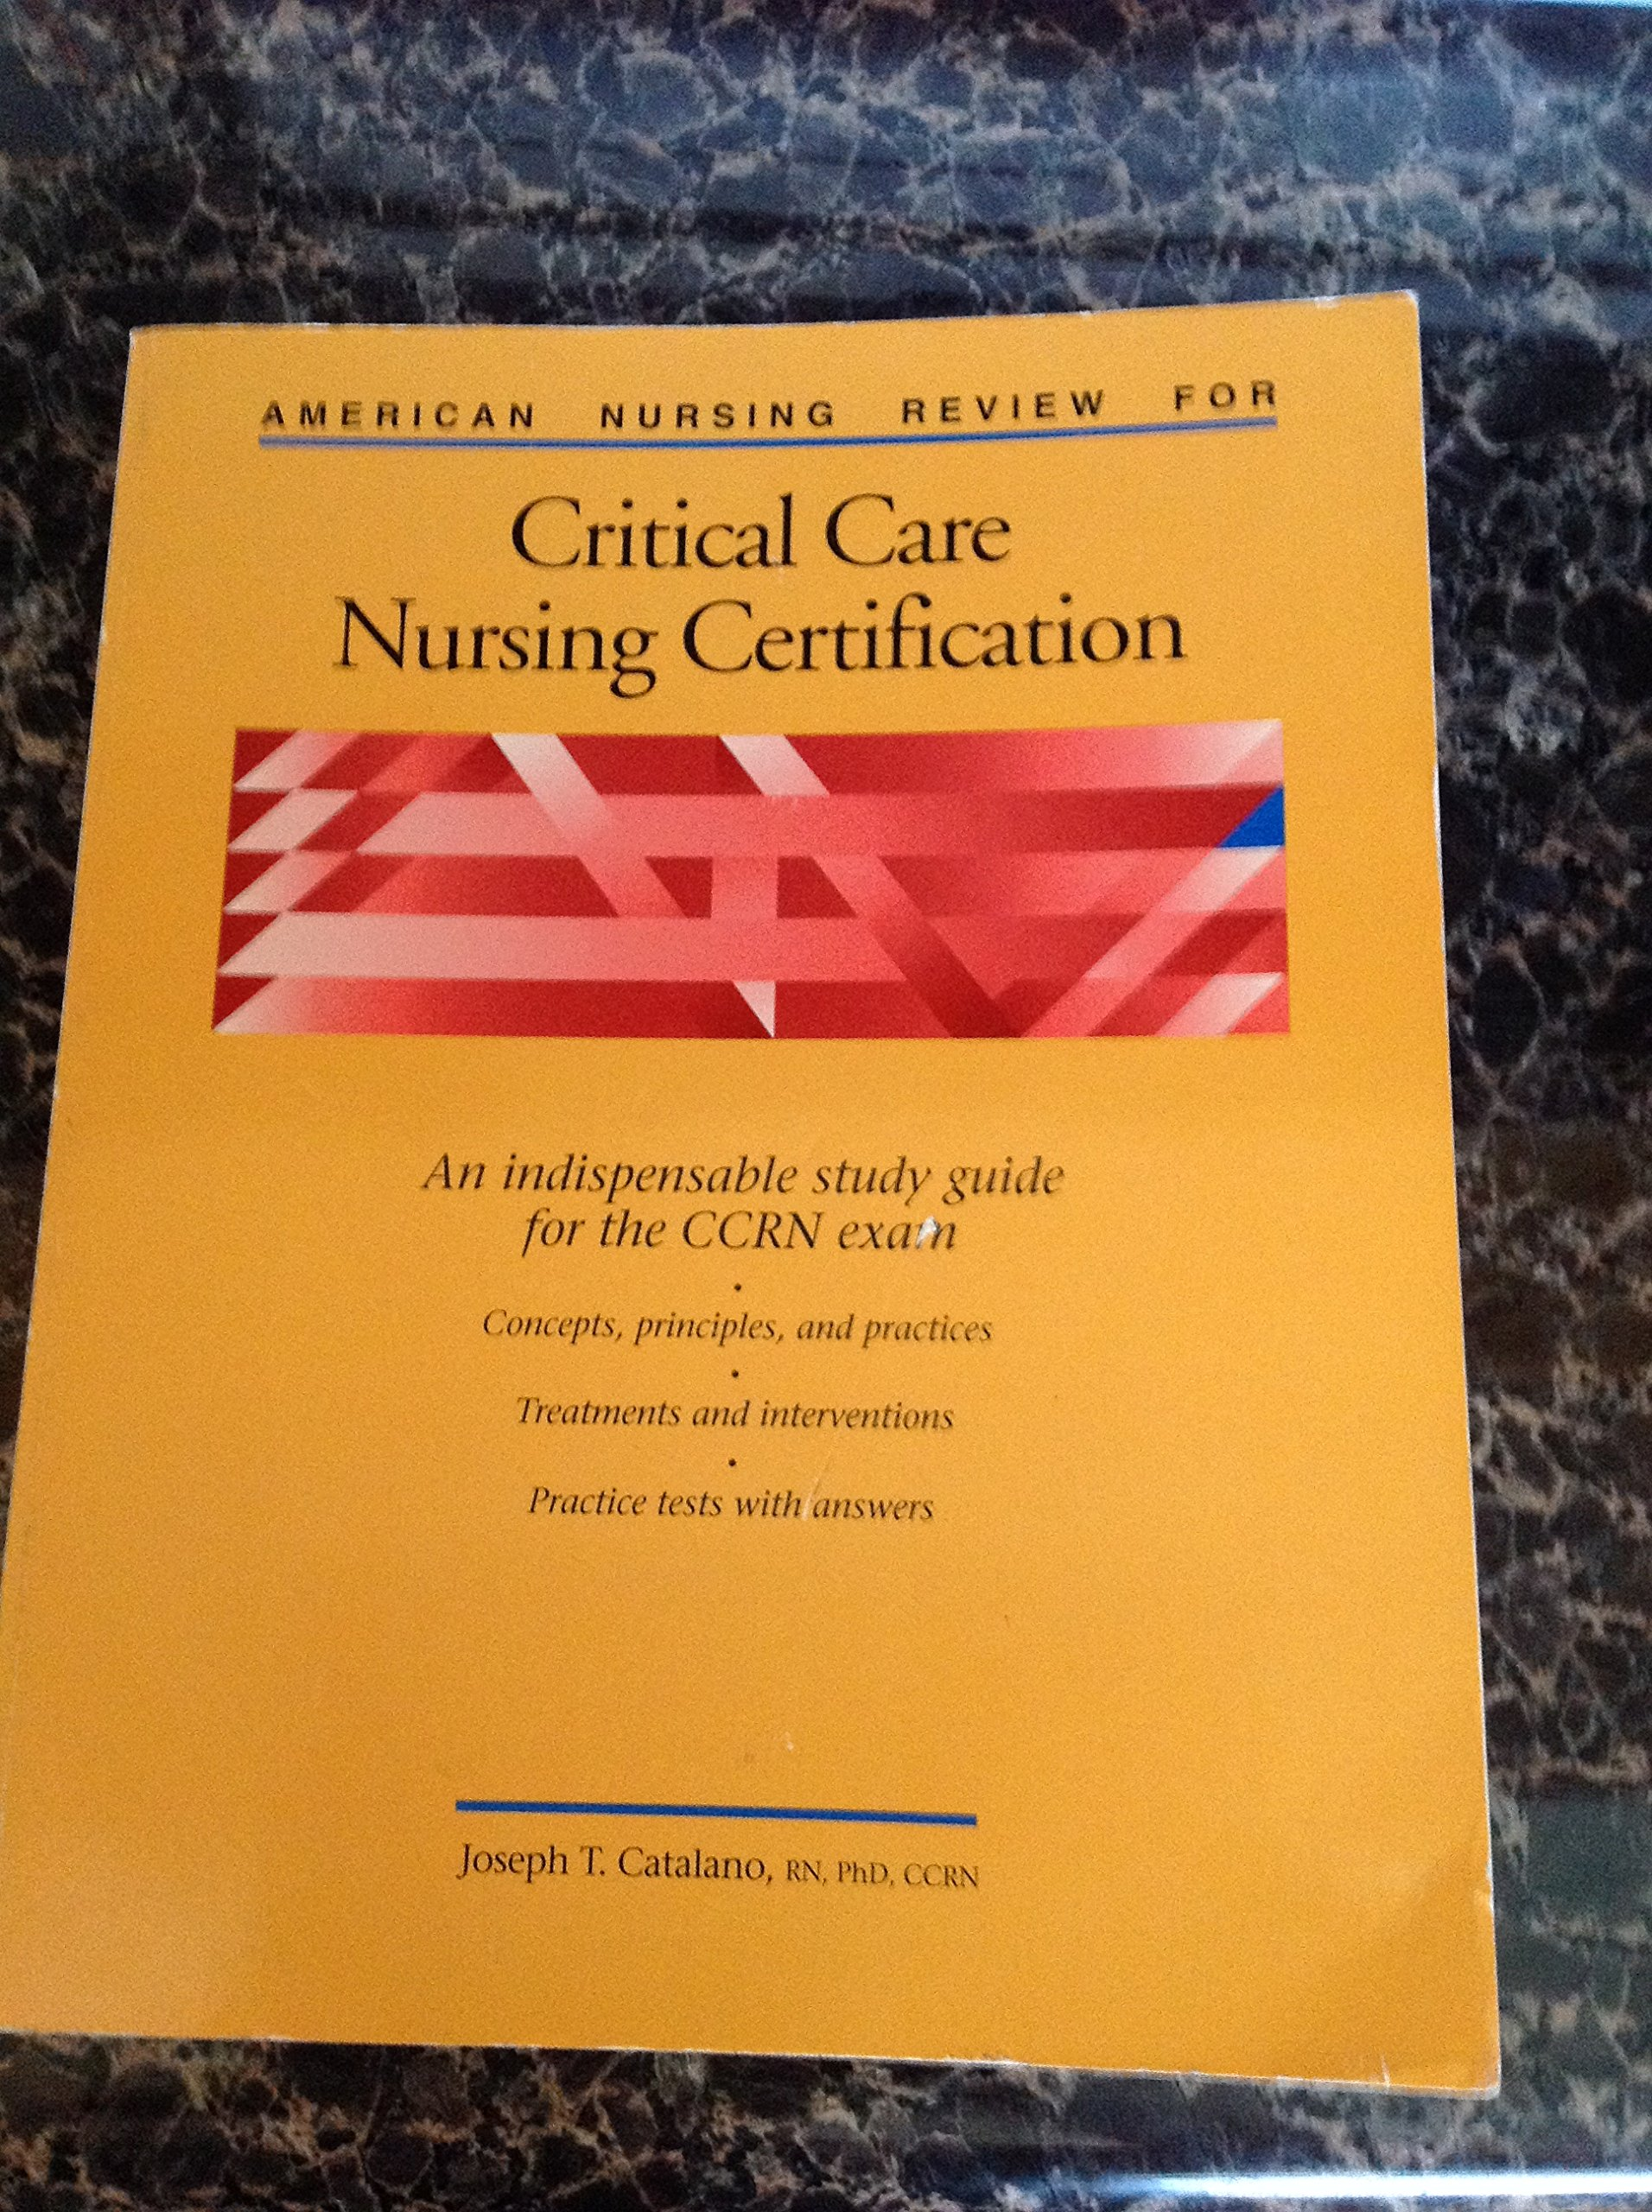 American Nursing Review For Critical Care Nursing Certification